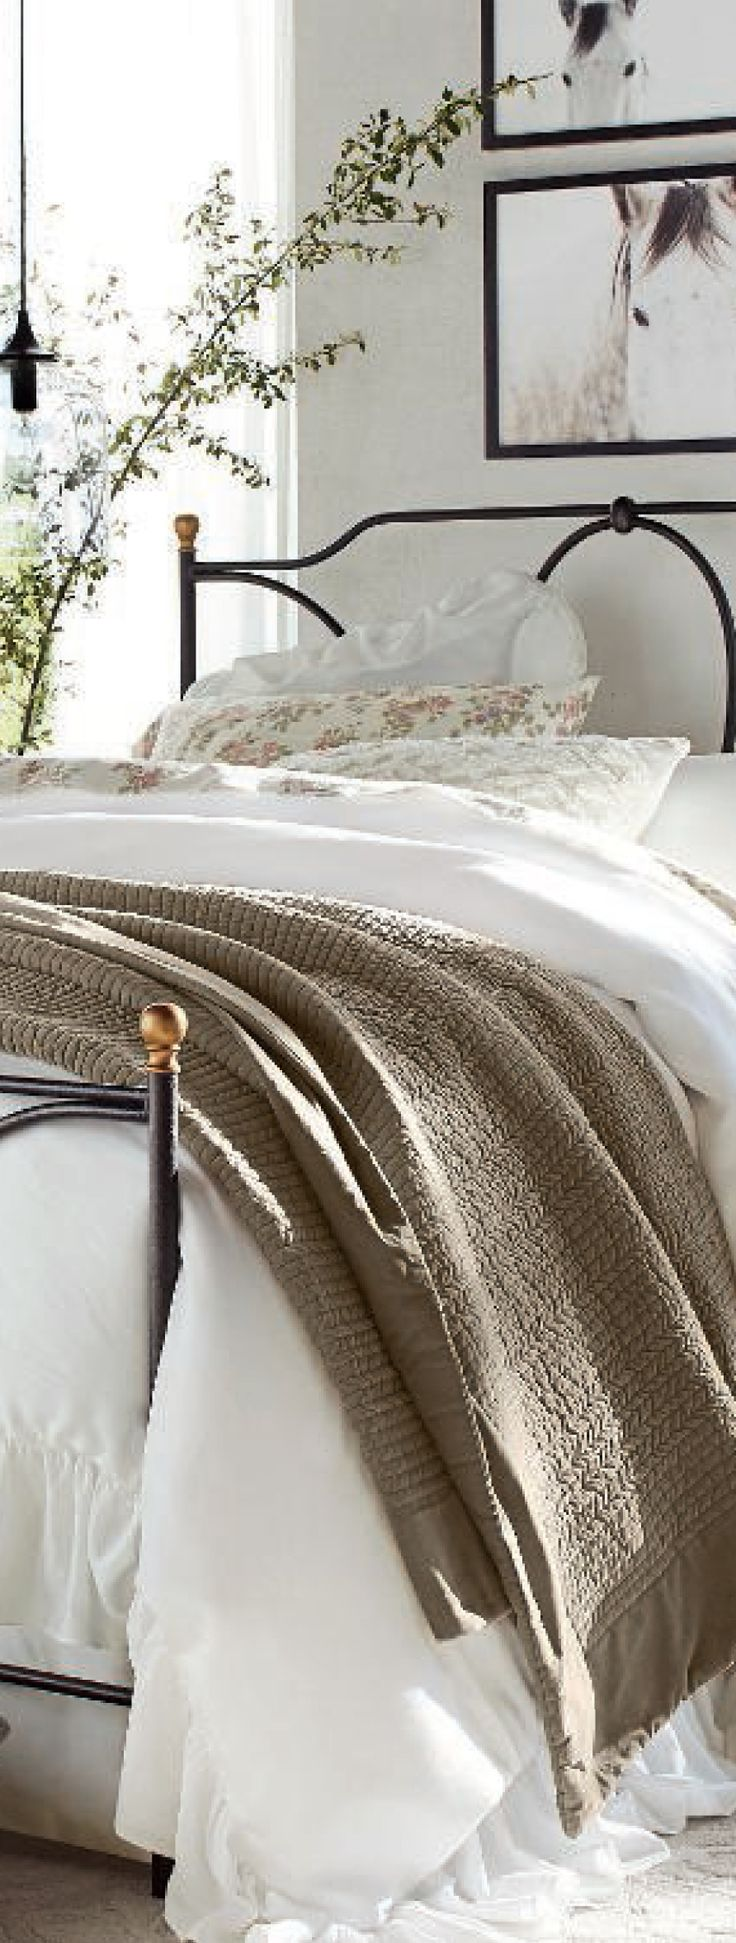 Country Duvet Cover & Bedroom